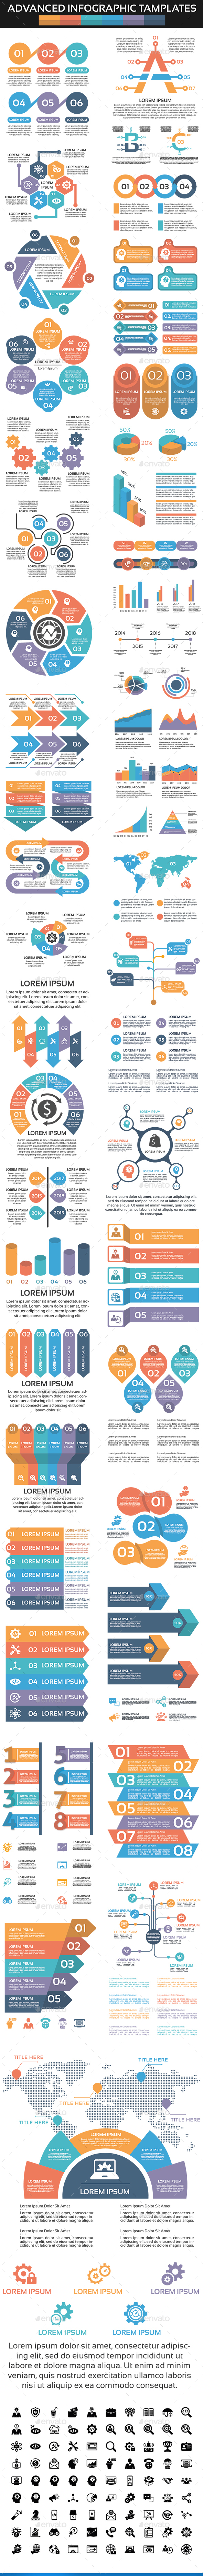 GraphicRiver Advanced Infographic Elements 20659442